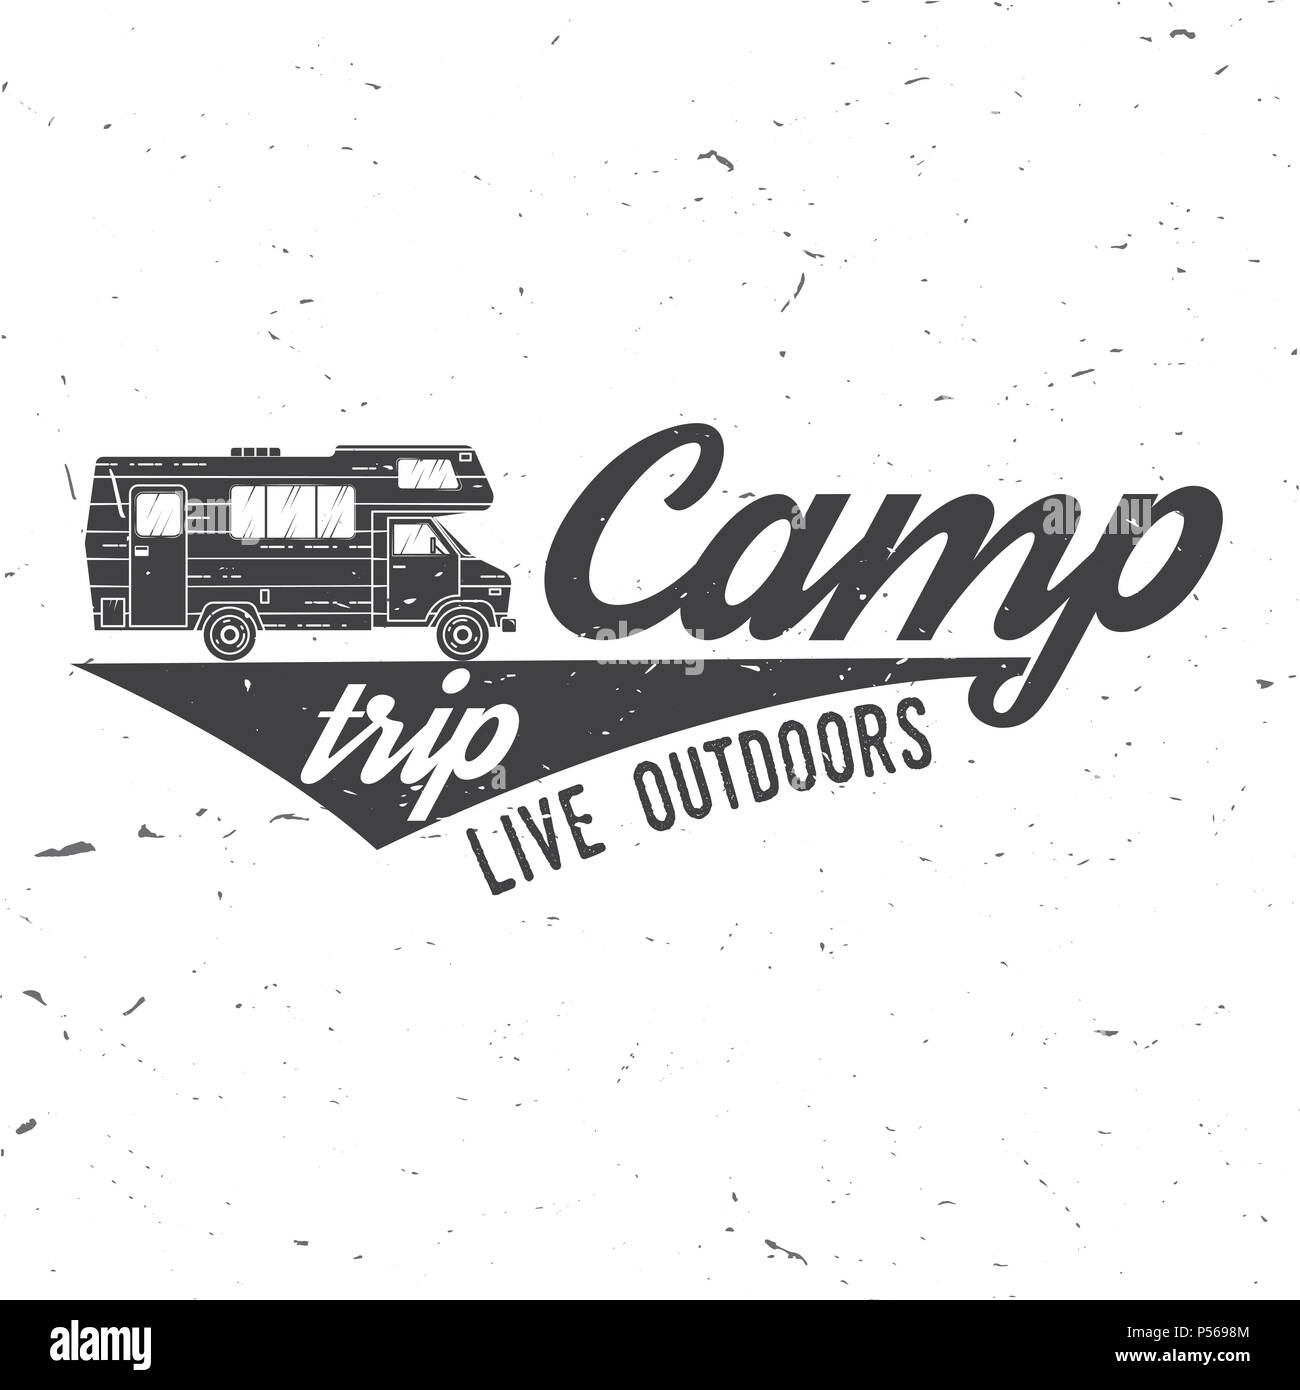 Camp Trip Live Outdoors Vector Illustration Concept For Shirt Or Logo Print Stamp Tee Vintage Typography Design With Camper Van Silhouette